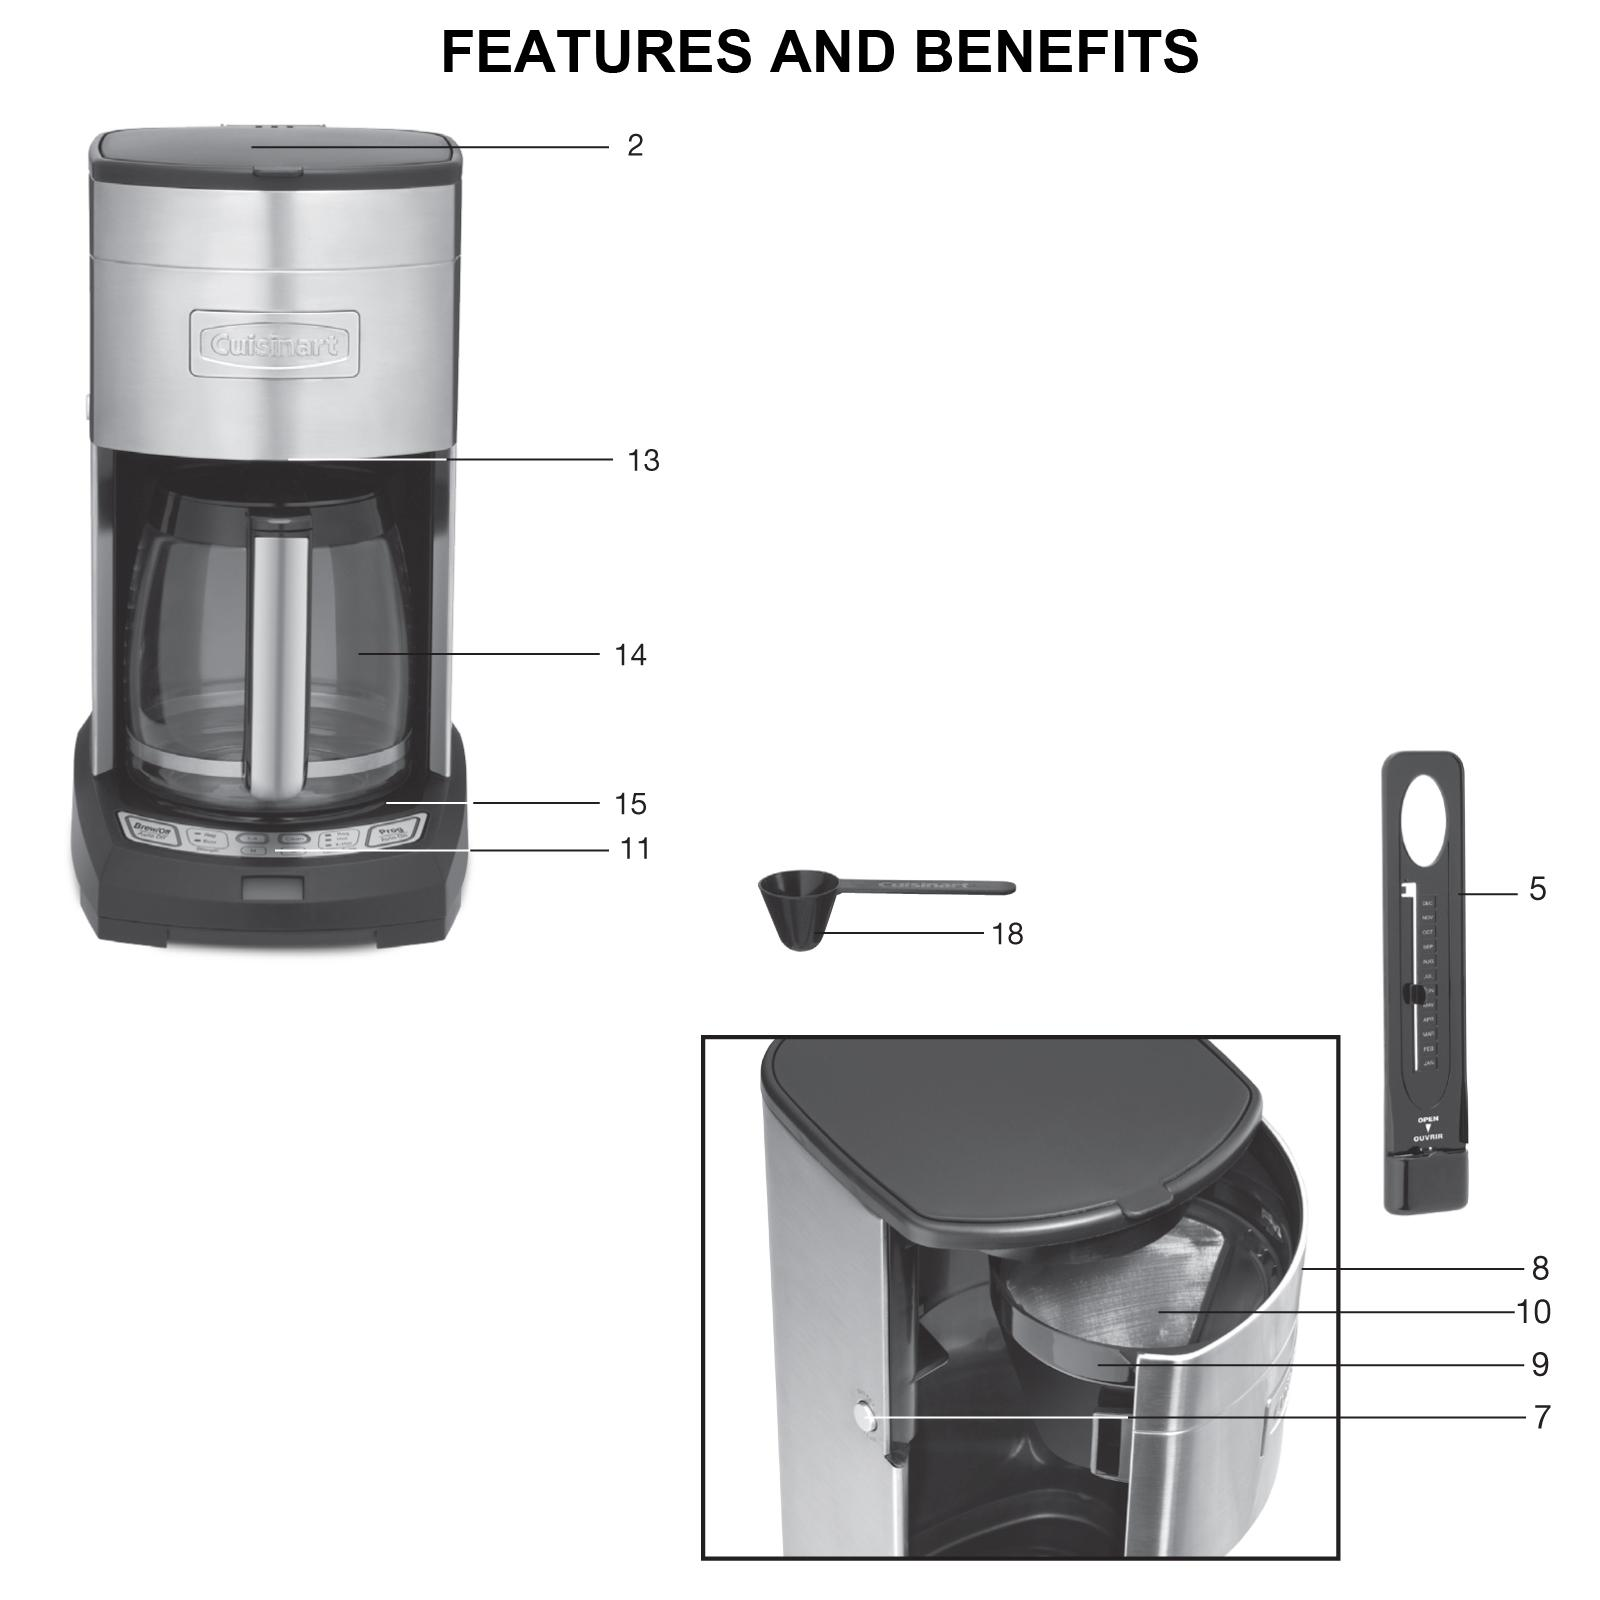 Cuisinart Extreme Brew 12cup Coffeemaker DCC-3650C - Ad#: 4951323 - Addoway